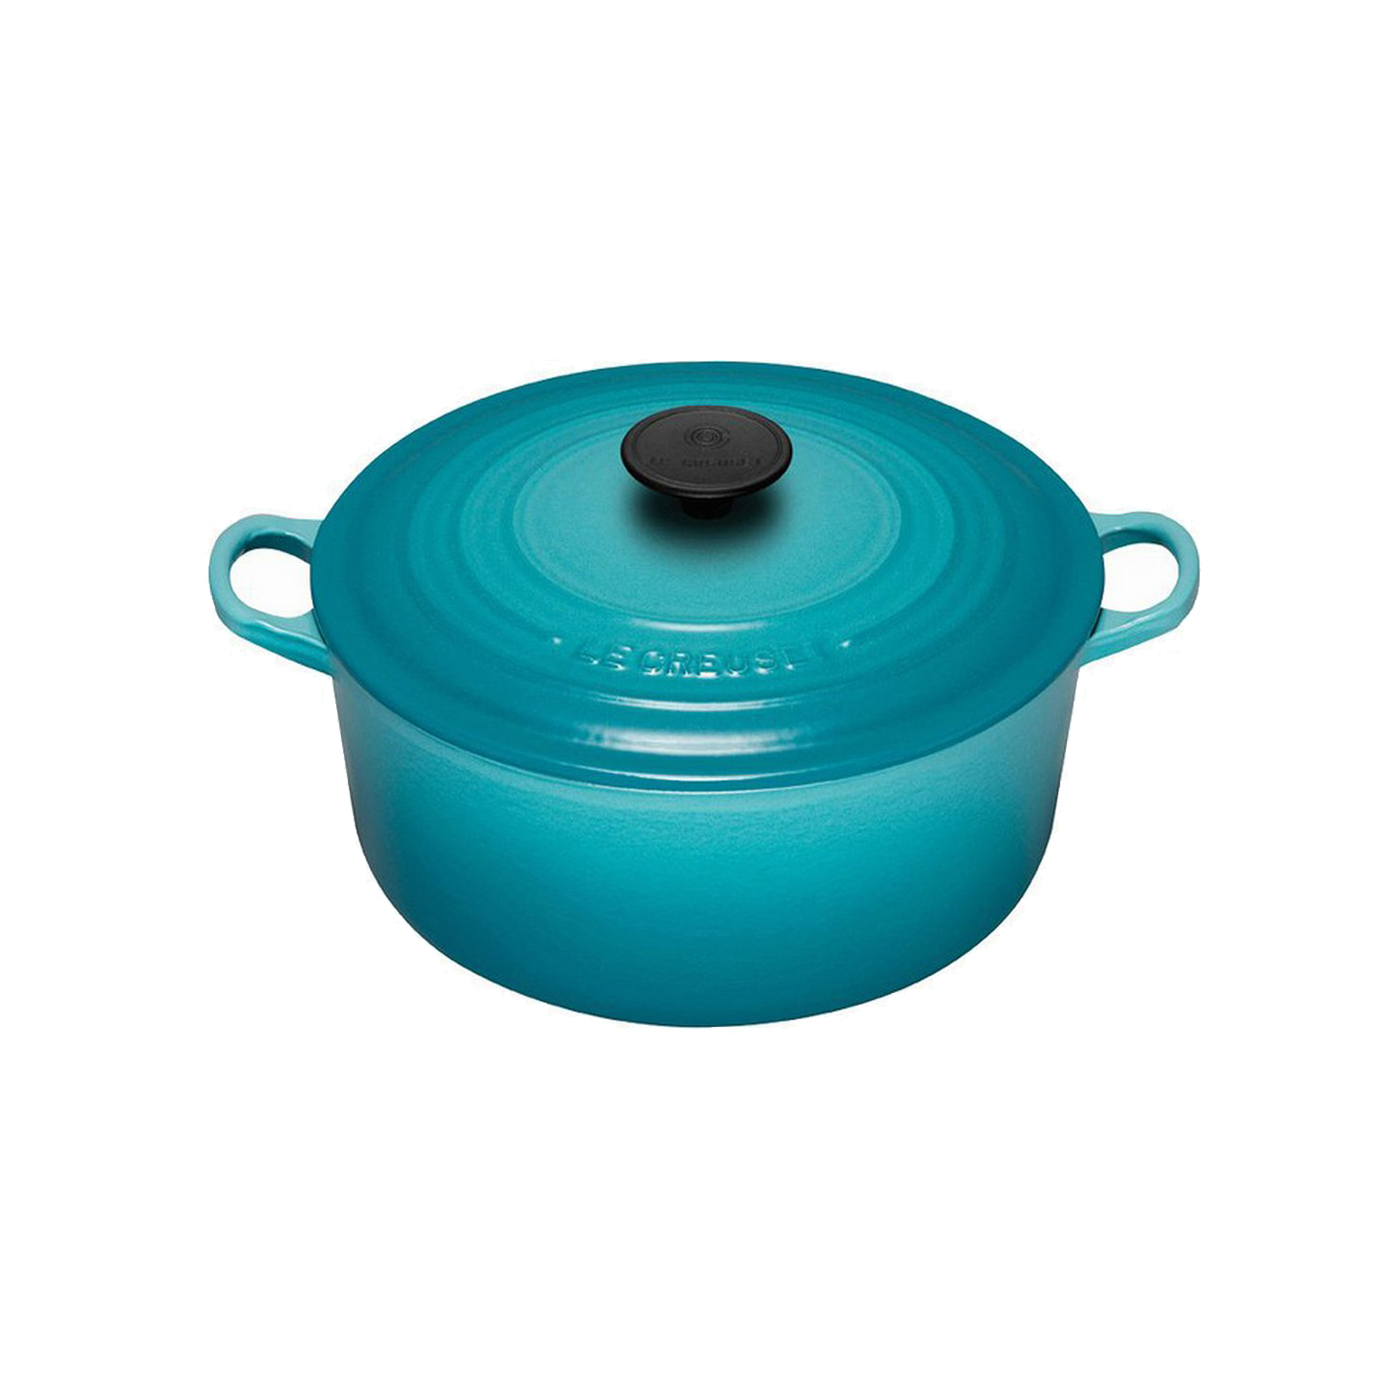 Le creuset caribbean sale : Proscan internet tablet reviews